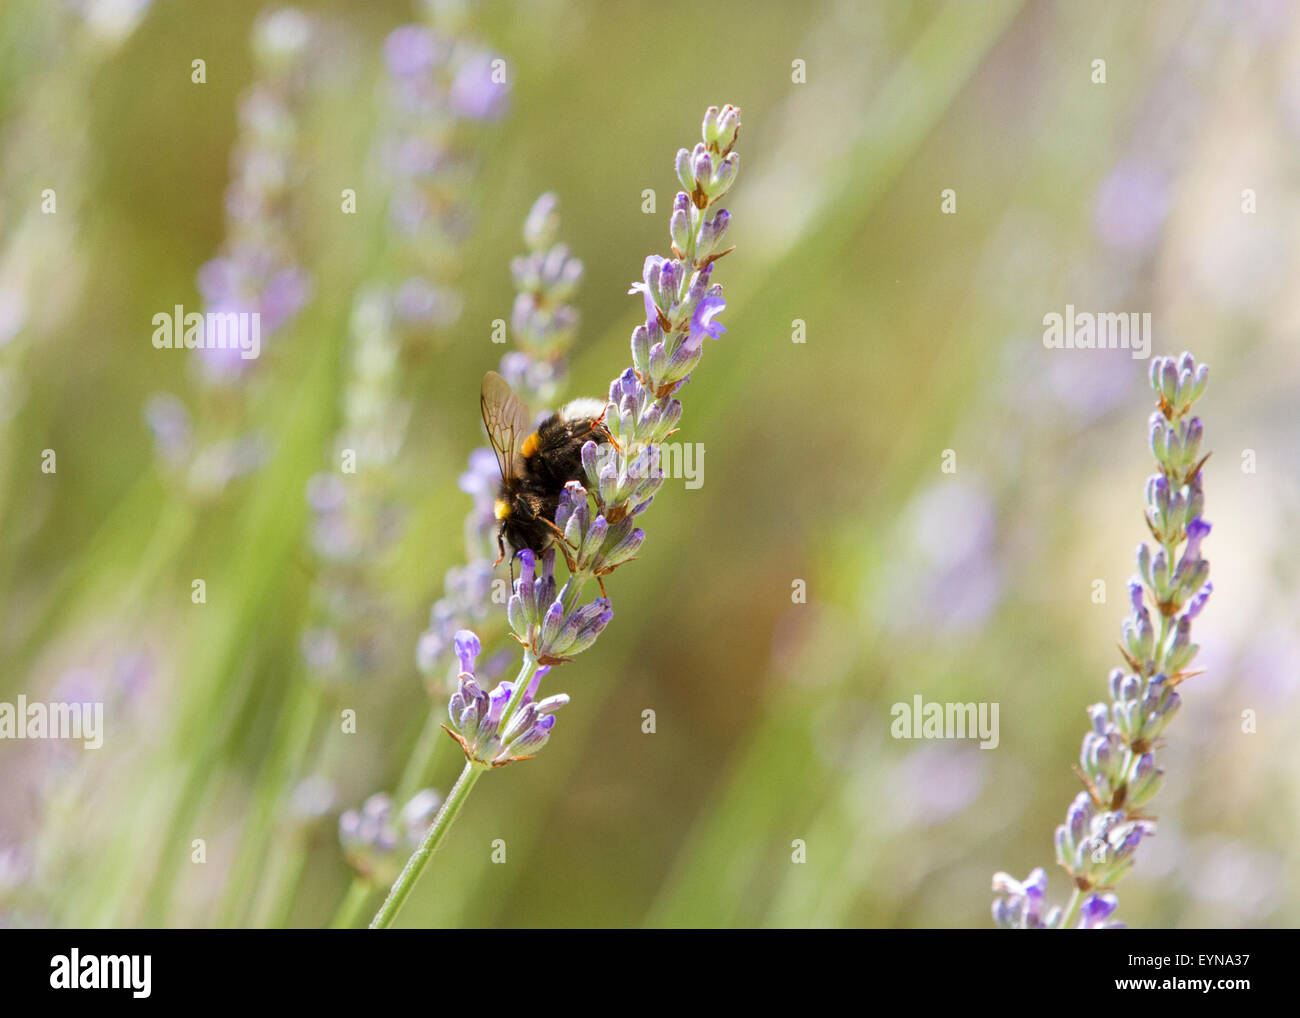 Bumble bee recovering pollen from lavender in a sunny Surrey garden - Stock Image